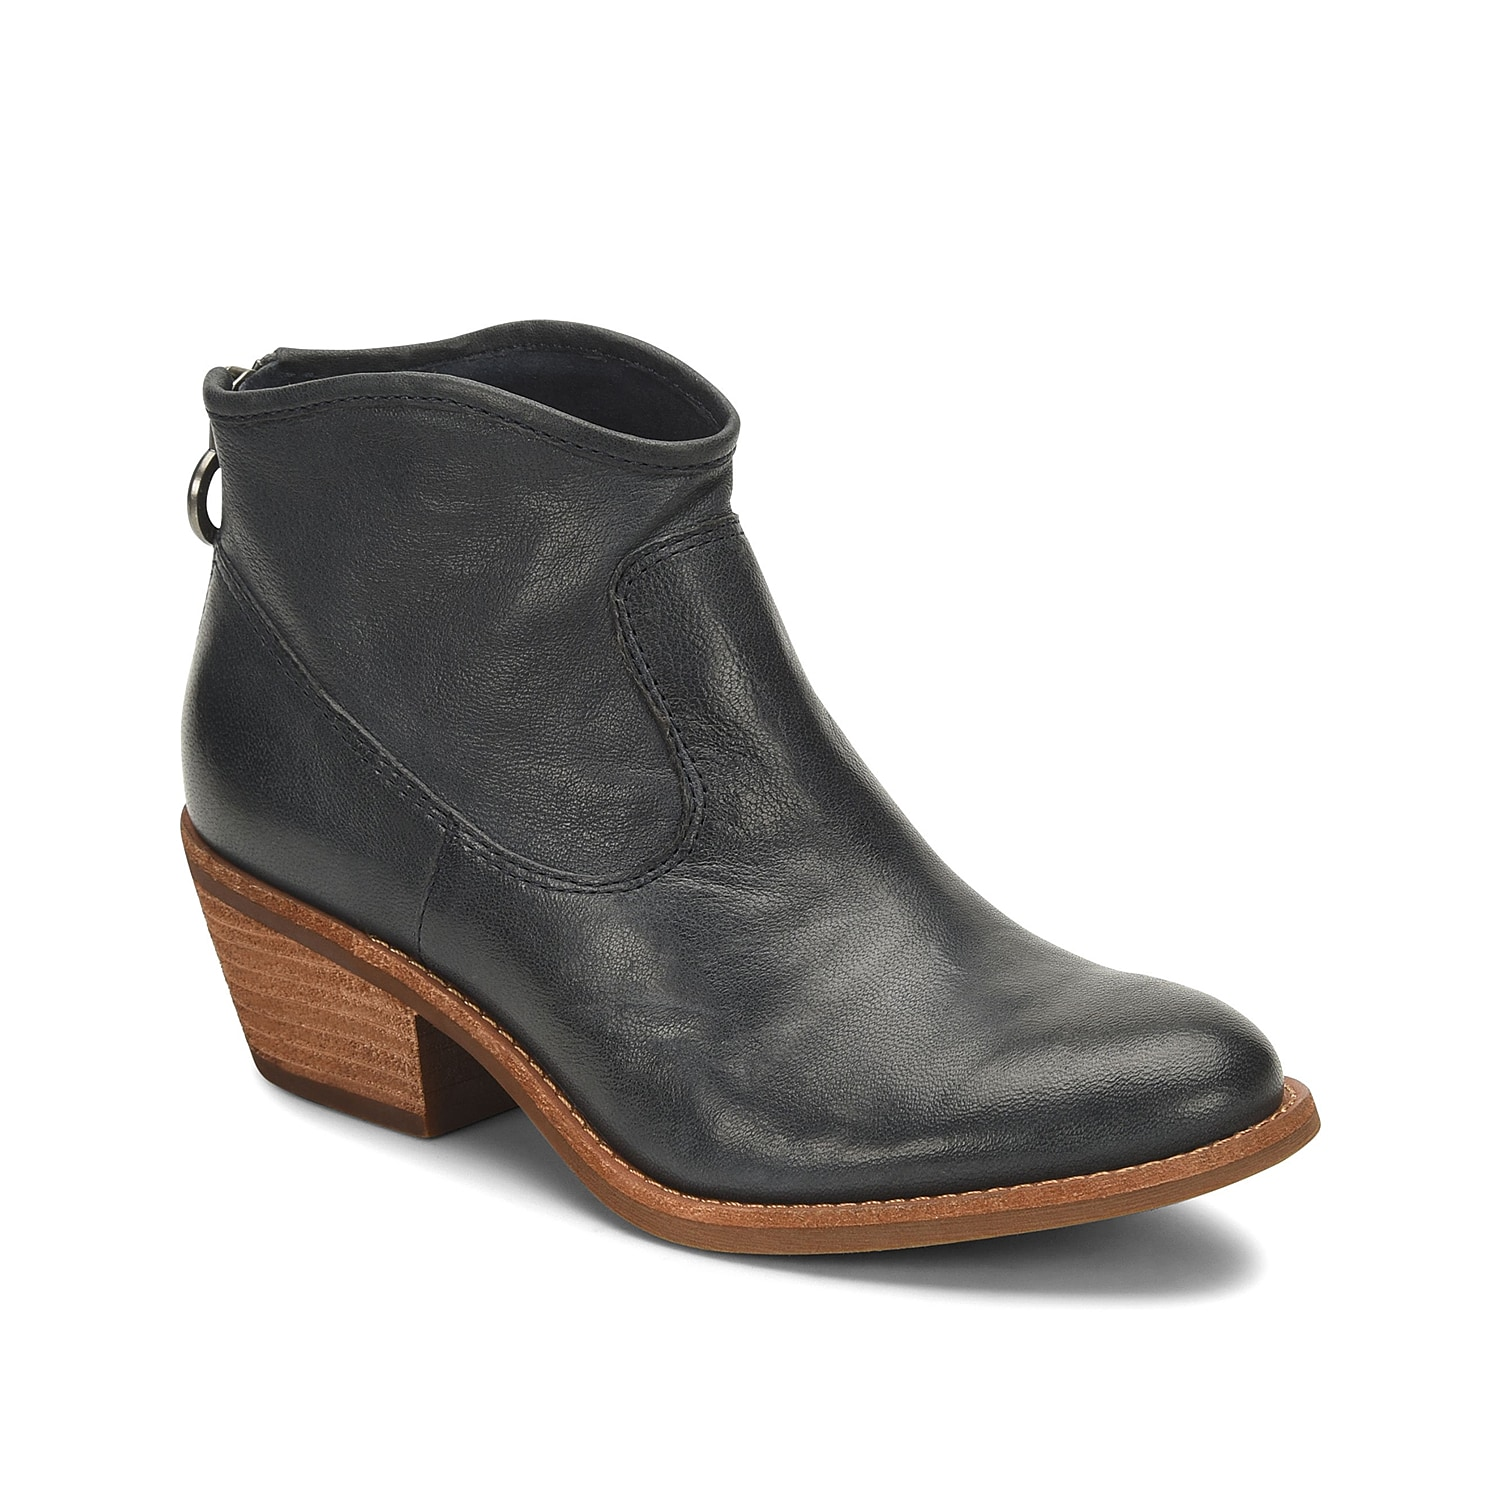 Lend a sleek flair to your casual look with the Aisley western bootie from Sofft. This ankle bootie is crafted from leather for a sophisticated appeal and is finished with a block heel for a modest lift.Click here for Boot Measuring Guide.